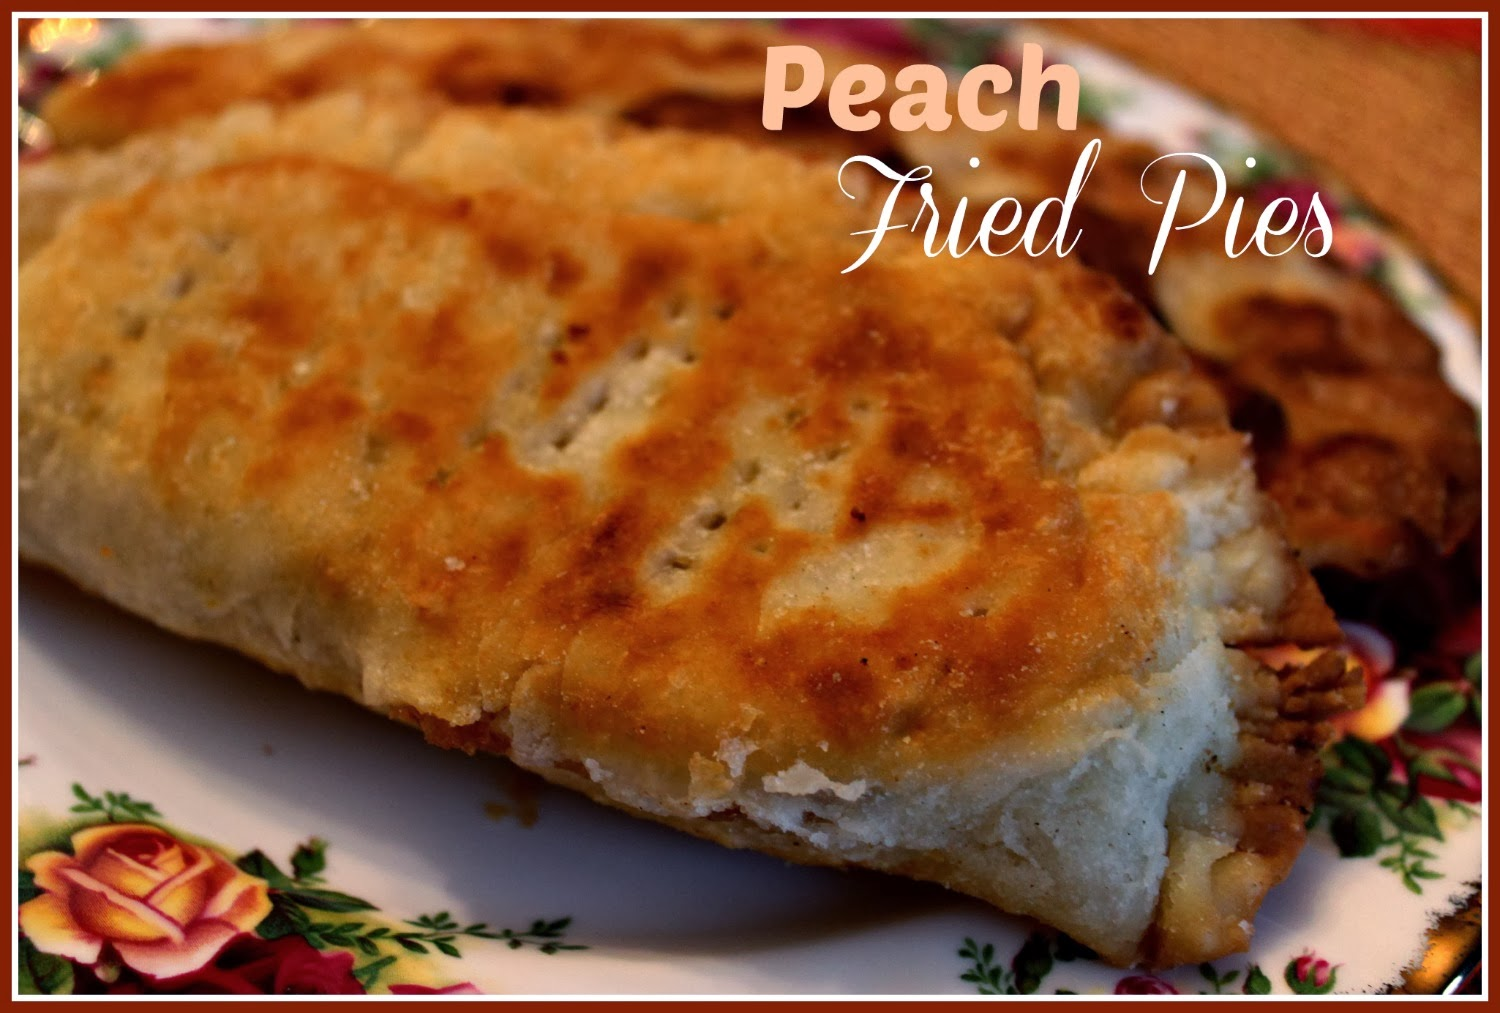 peach pies bourbon peach h and pies bourbon peach h and pies fried